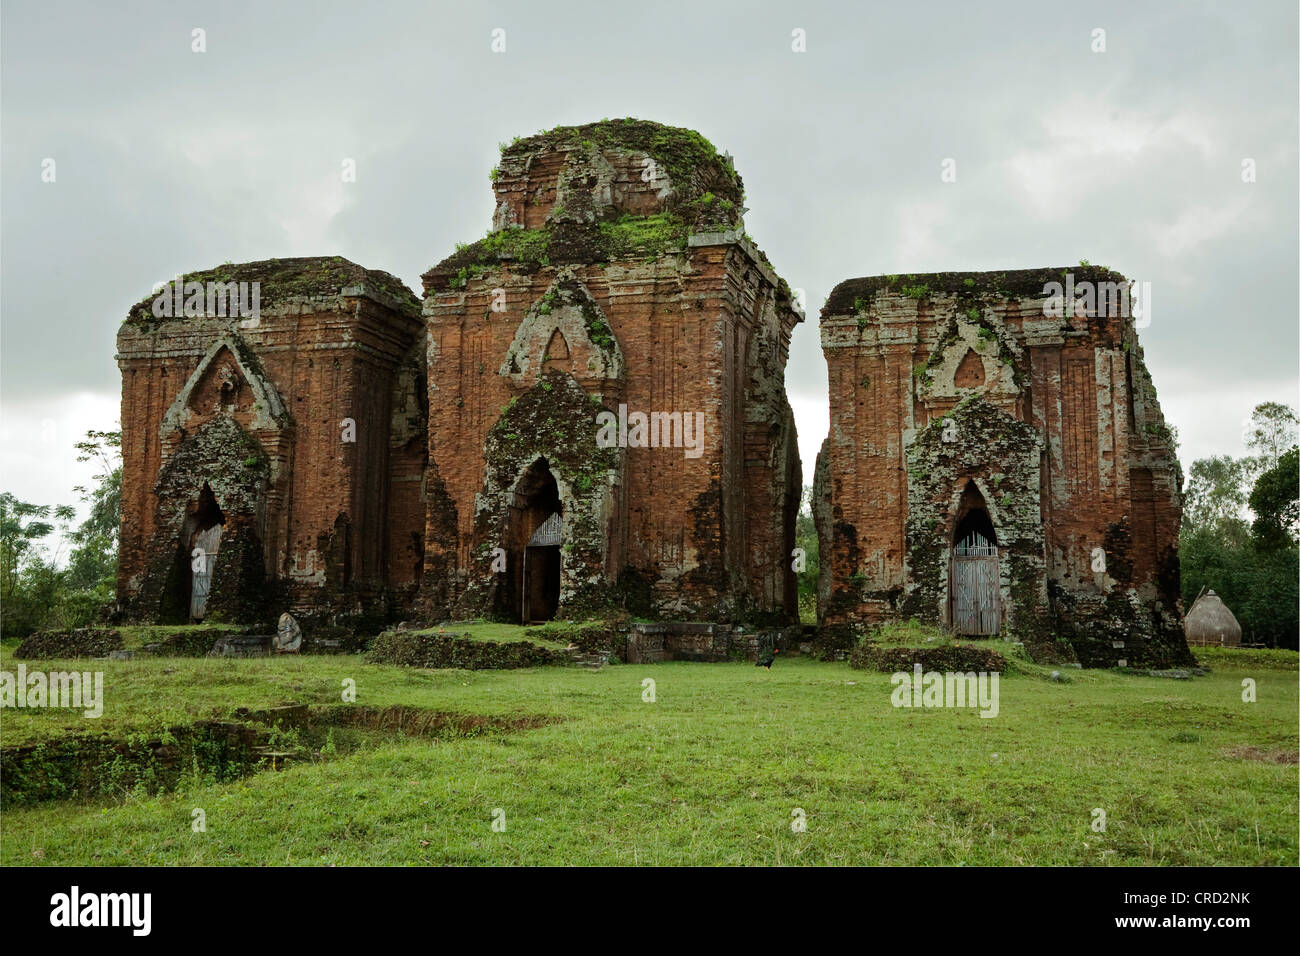 Three ancient CHAM TEMPLES inside the CHIEN DANG RUINS, Vietnam, Tam Ky - Stock Image